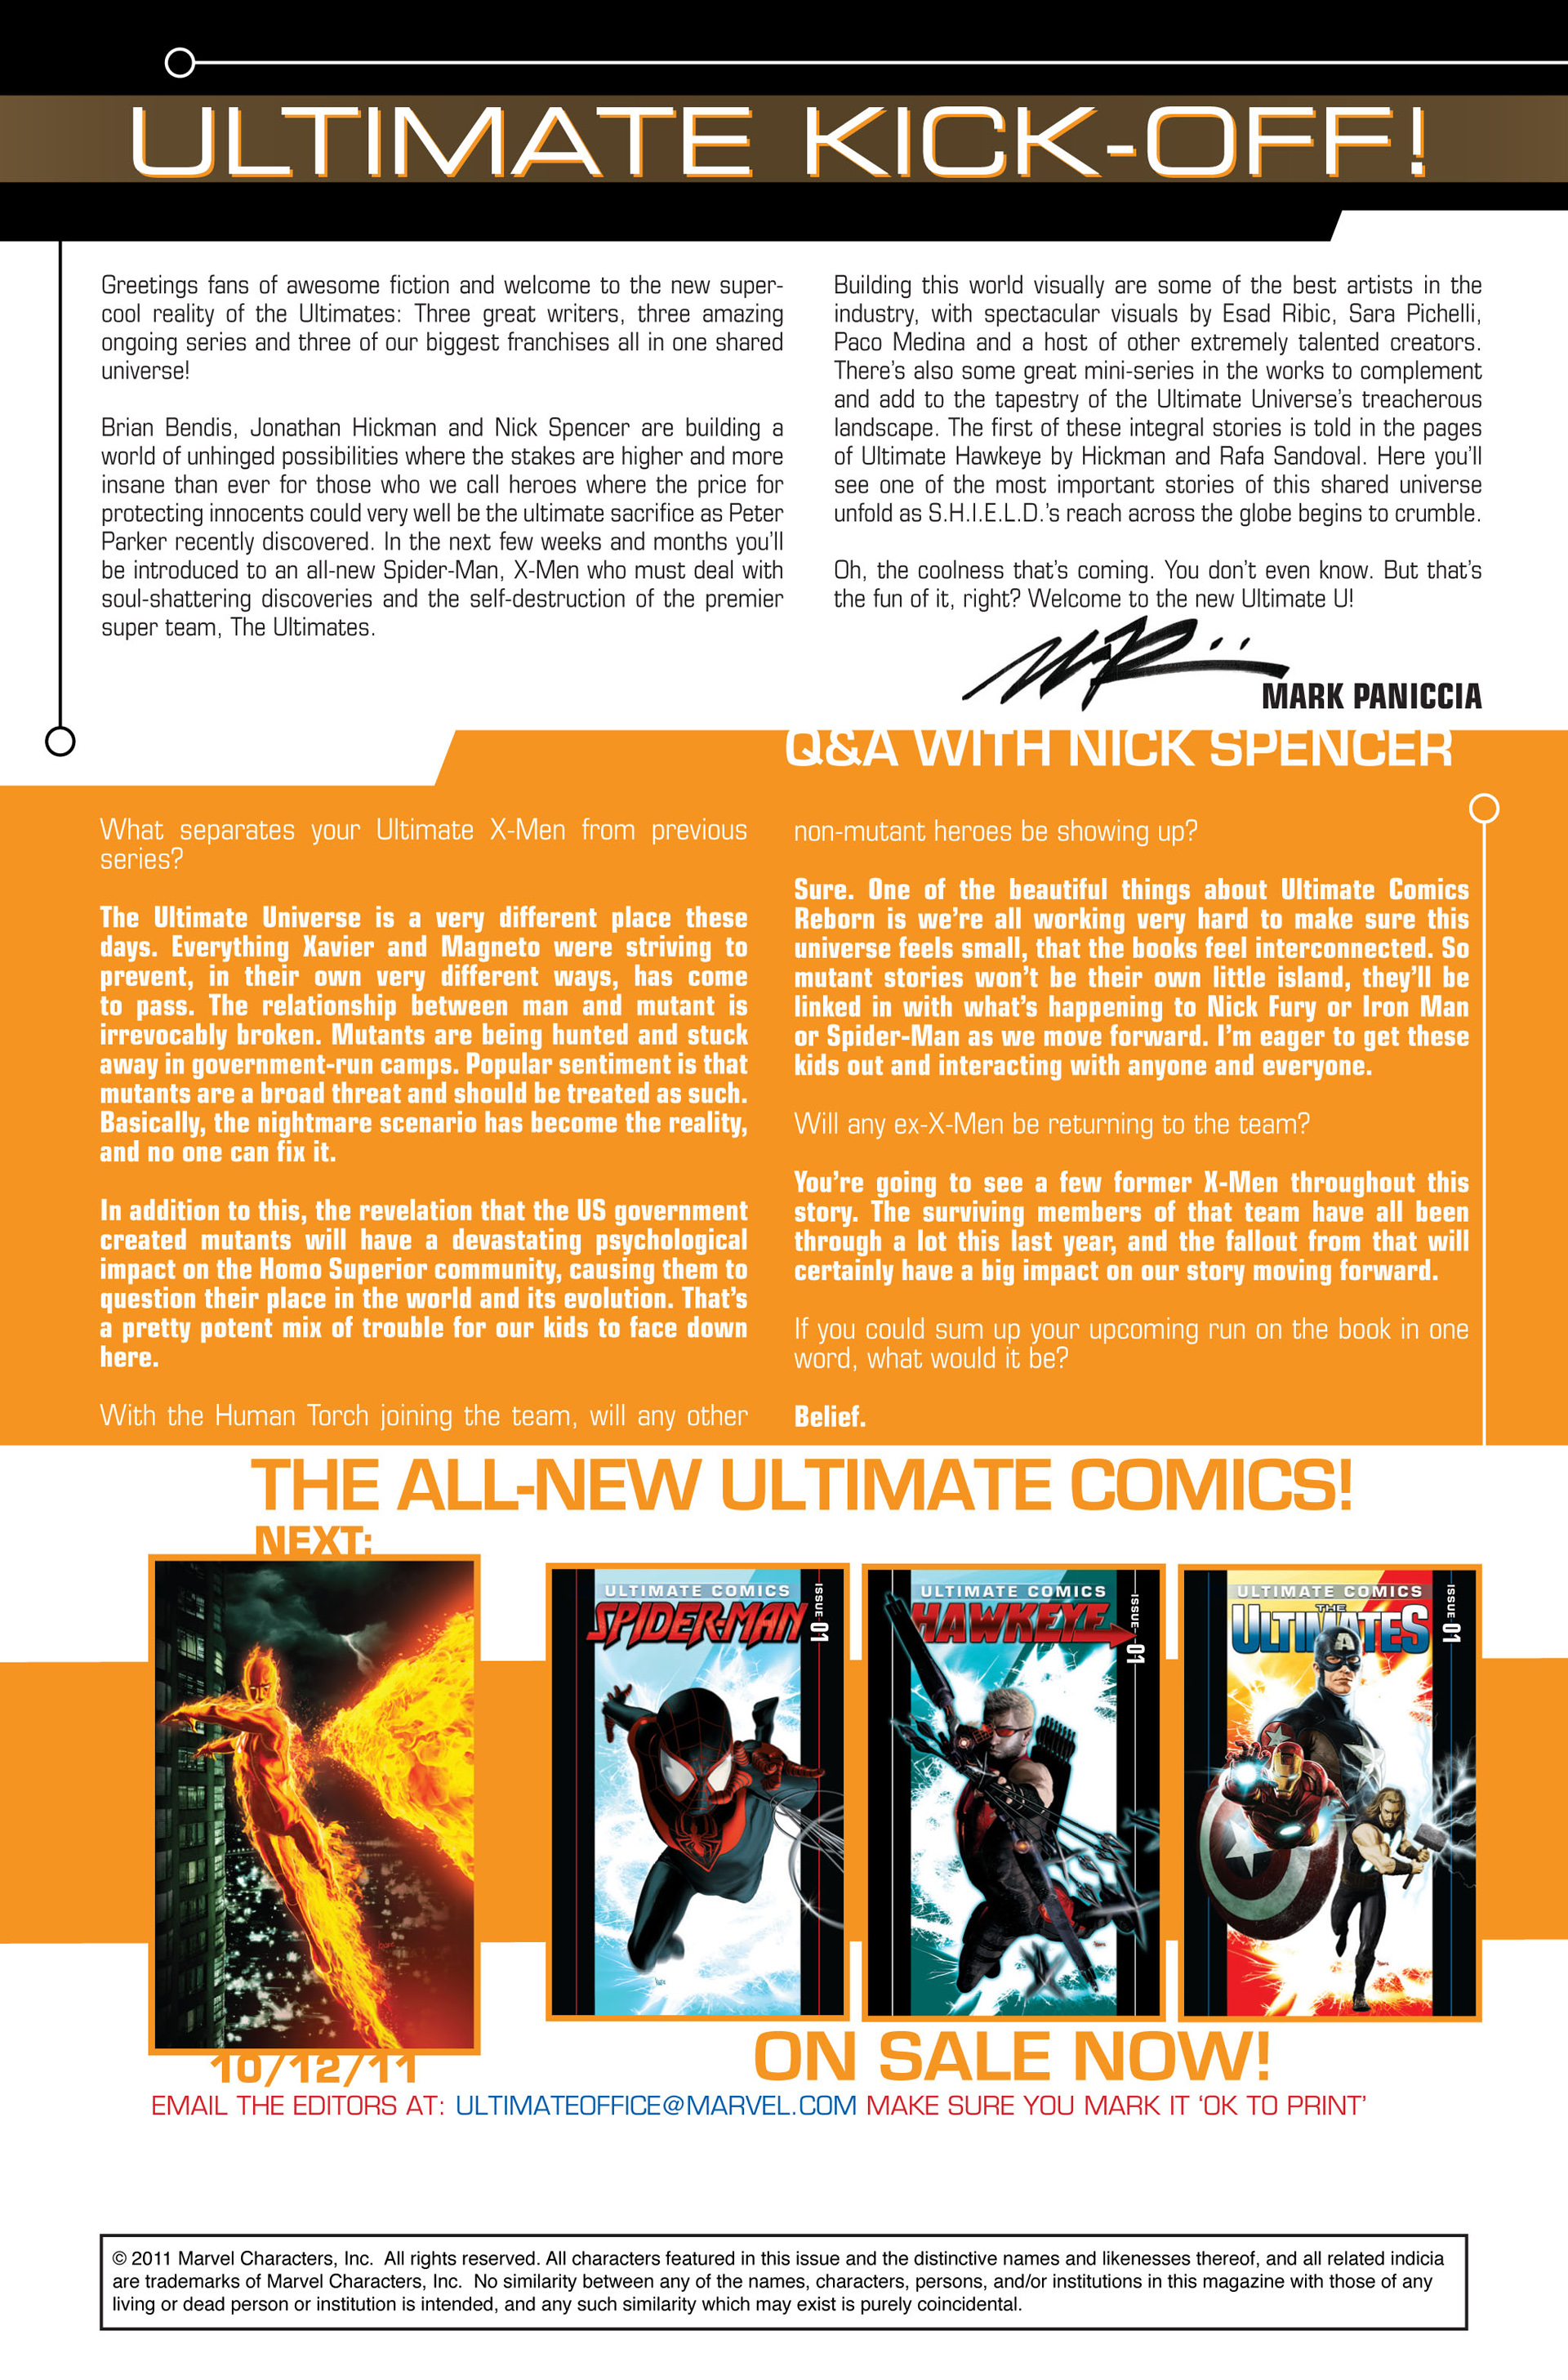 Read online Ultimate Comics X-Men comic -  Issue #1 - 24